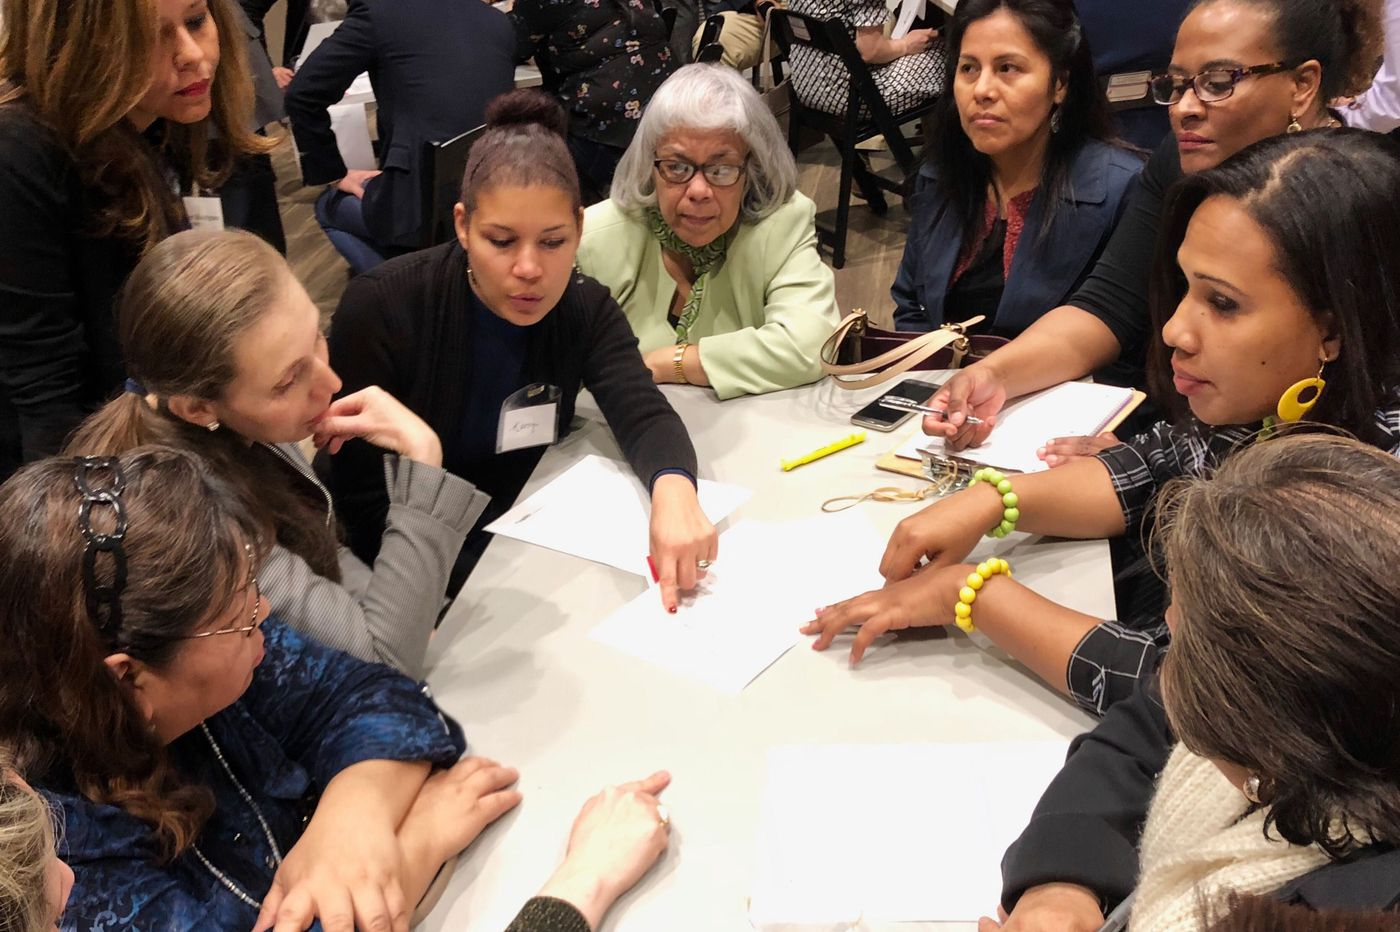 Latino small-business owners give Hispanic Chamber their wish list for resources in first 'one-on-one' session